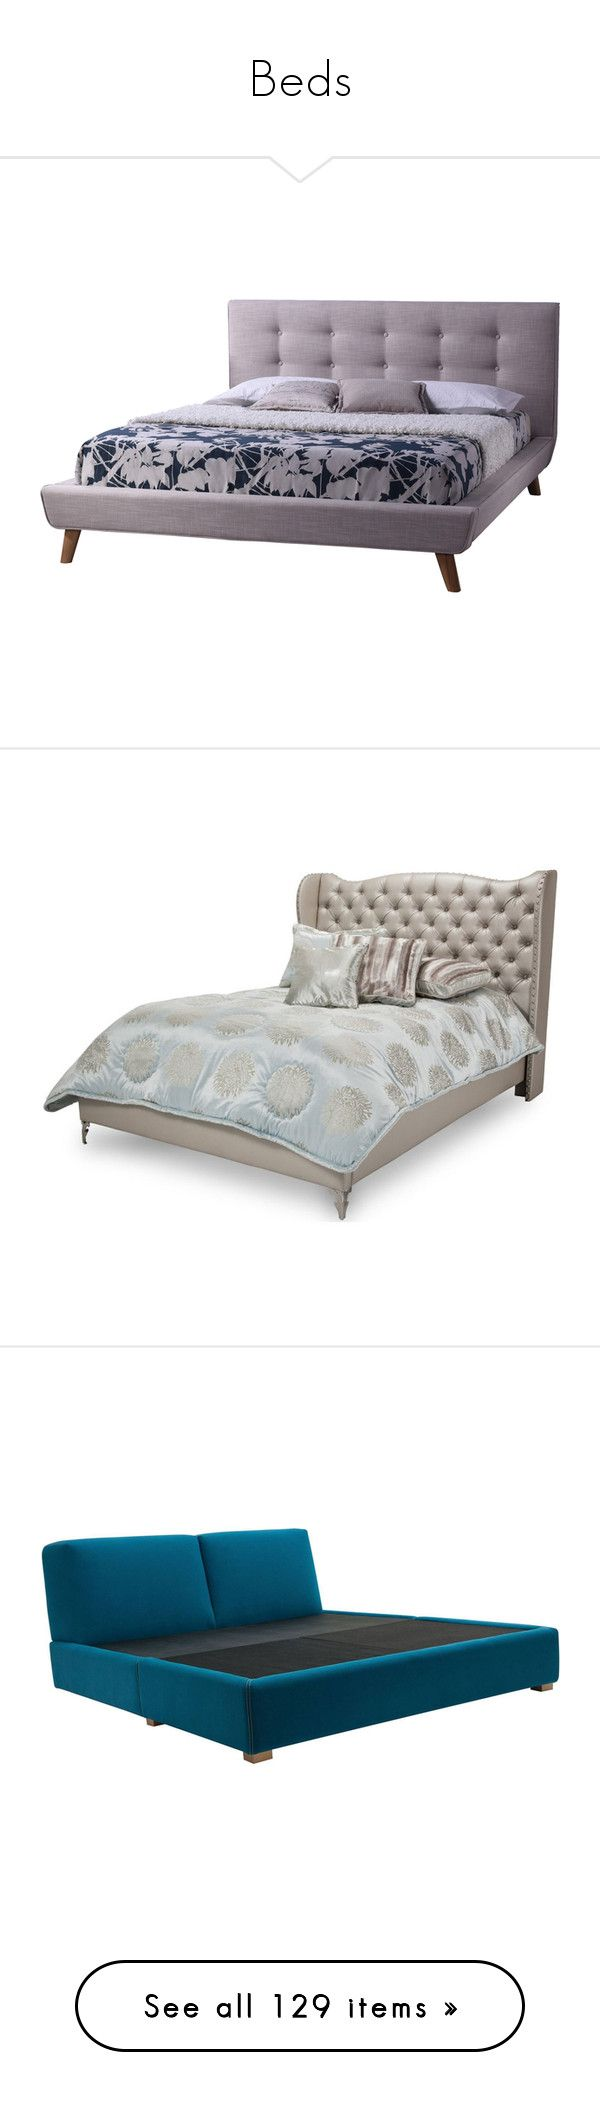 """""""Beds"""" by kat-whitethorn ❤ liked on Polyvore featuring home, furniture, beds, upholstered beds, baxton studio bed, modern bed platform, fabric beds, fabric furniture, california king bed platform and hollywood bed"""